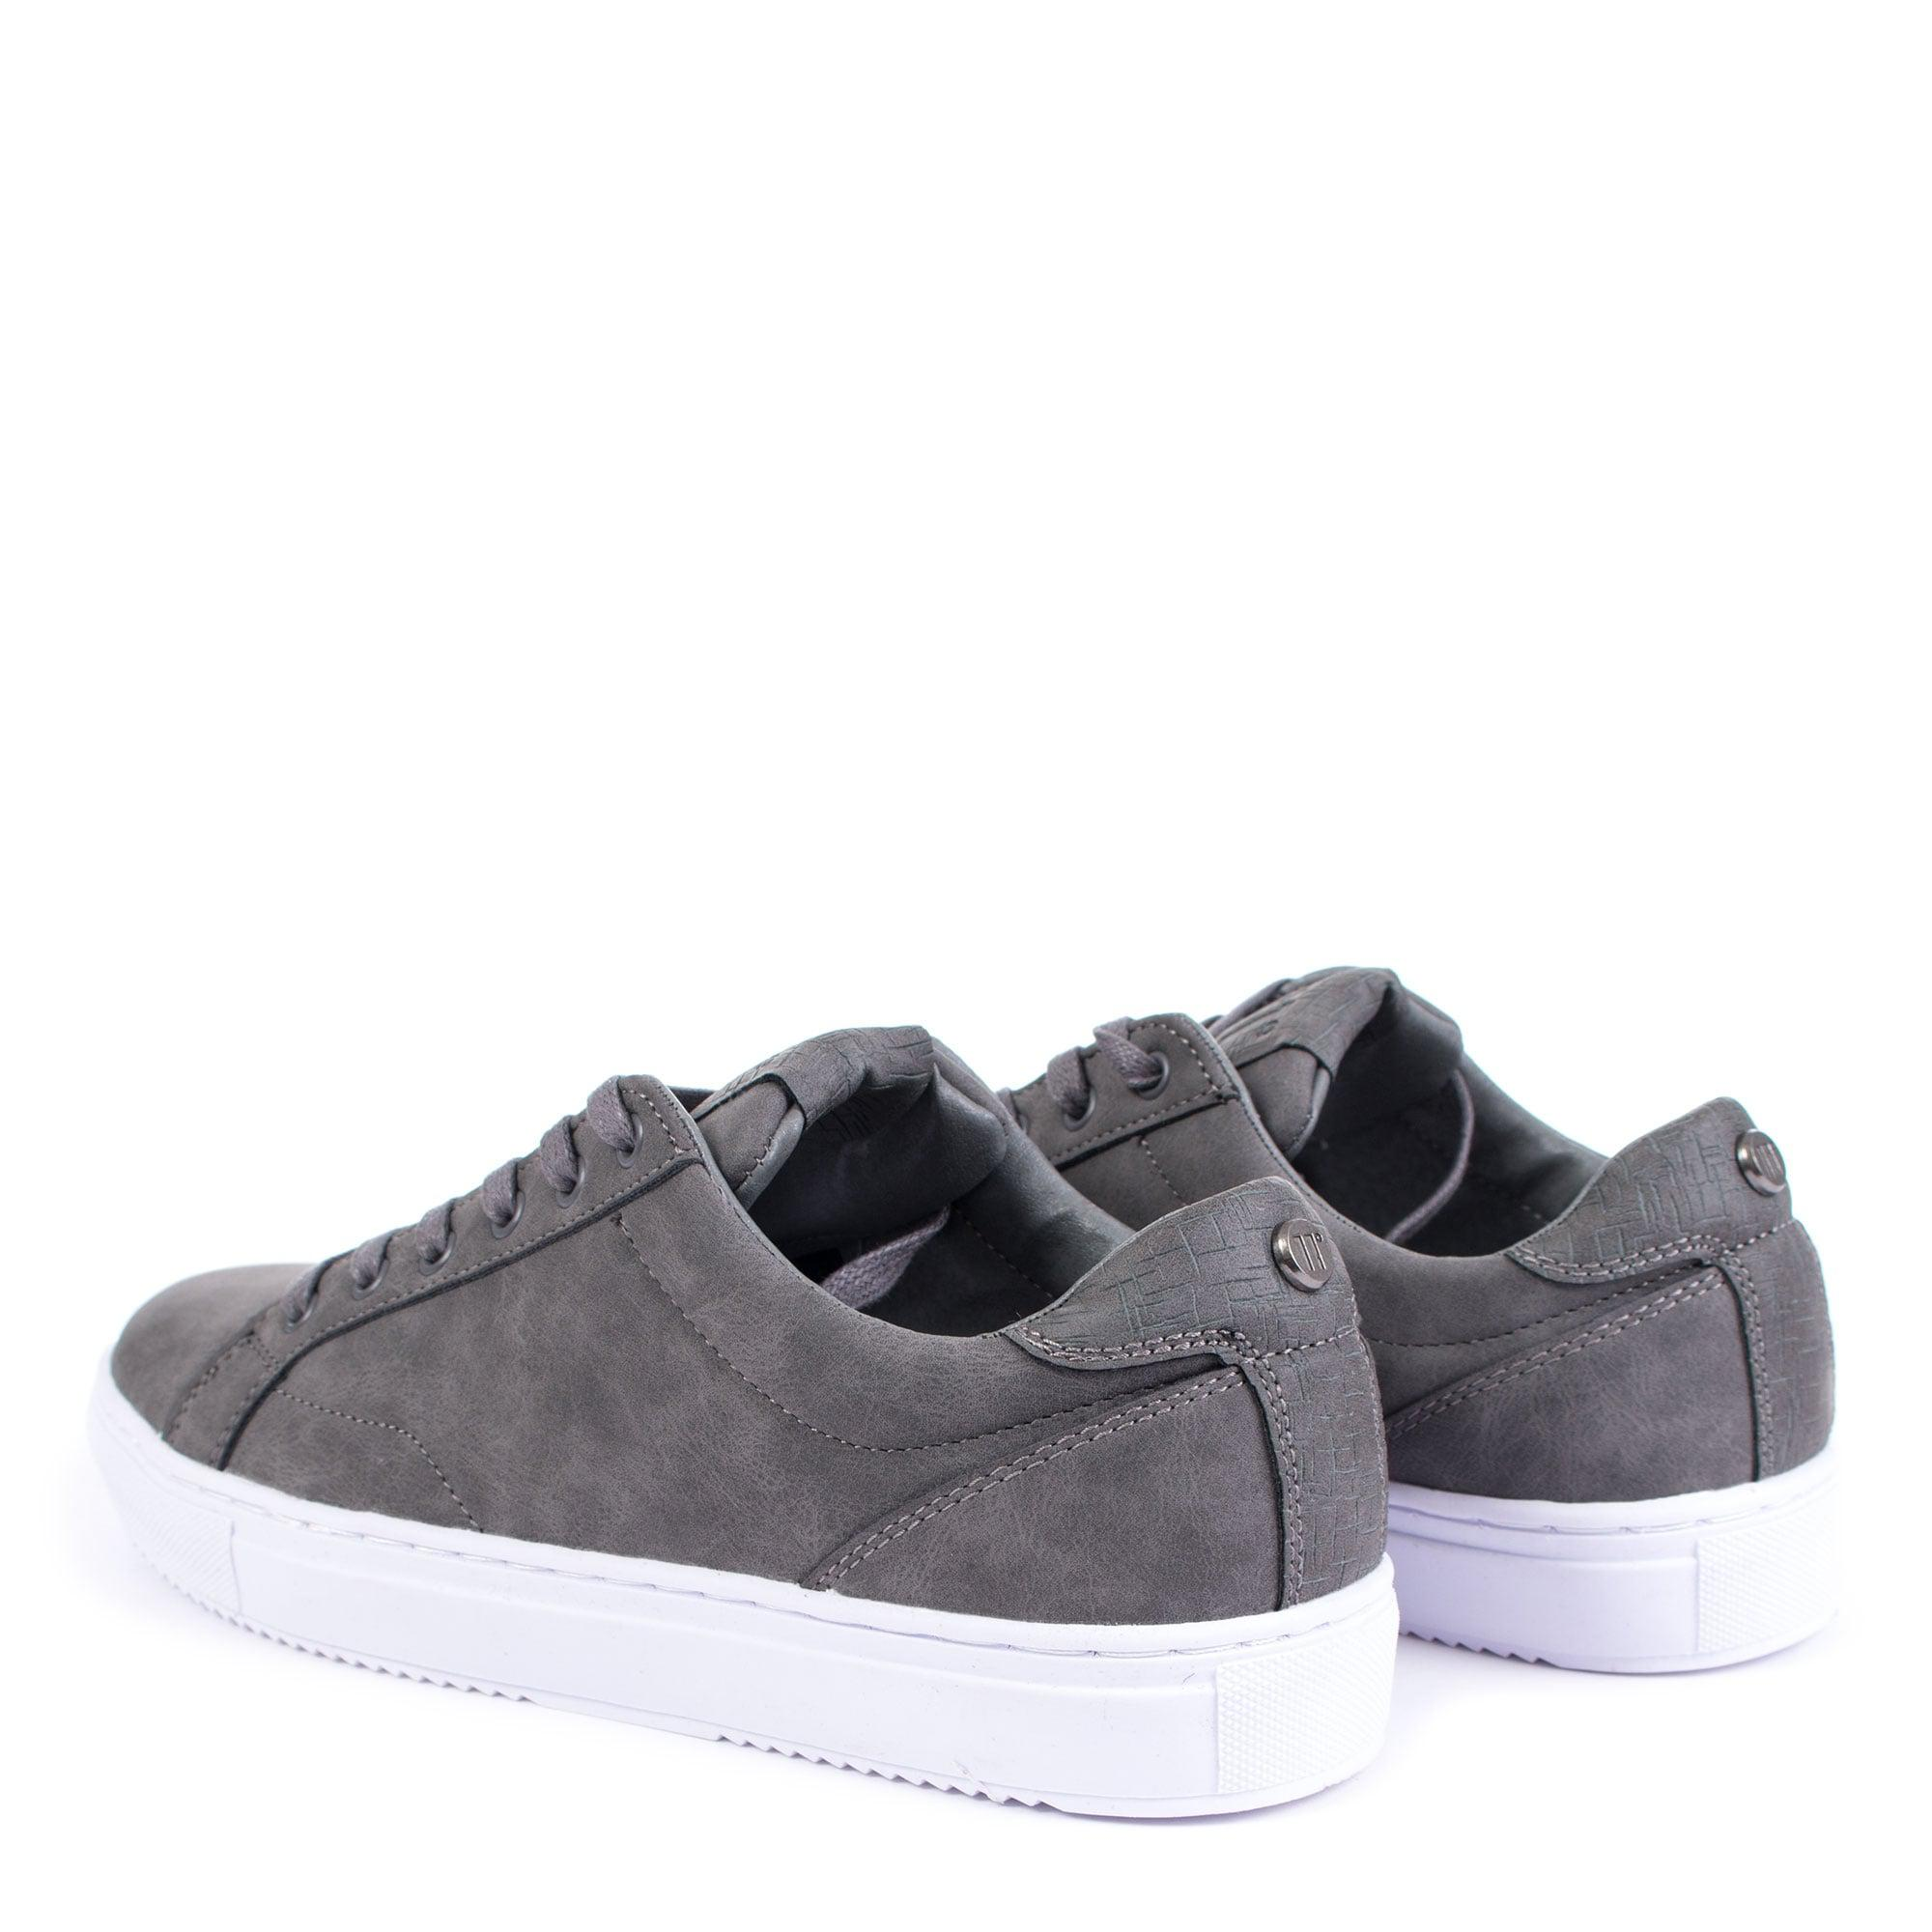 11 Degrees Viper Cupsole In Grey in Grey for Men